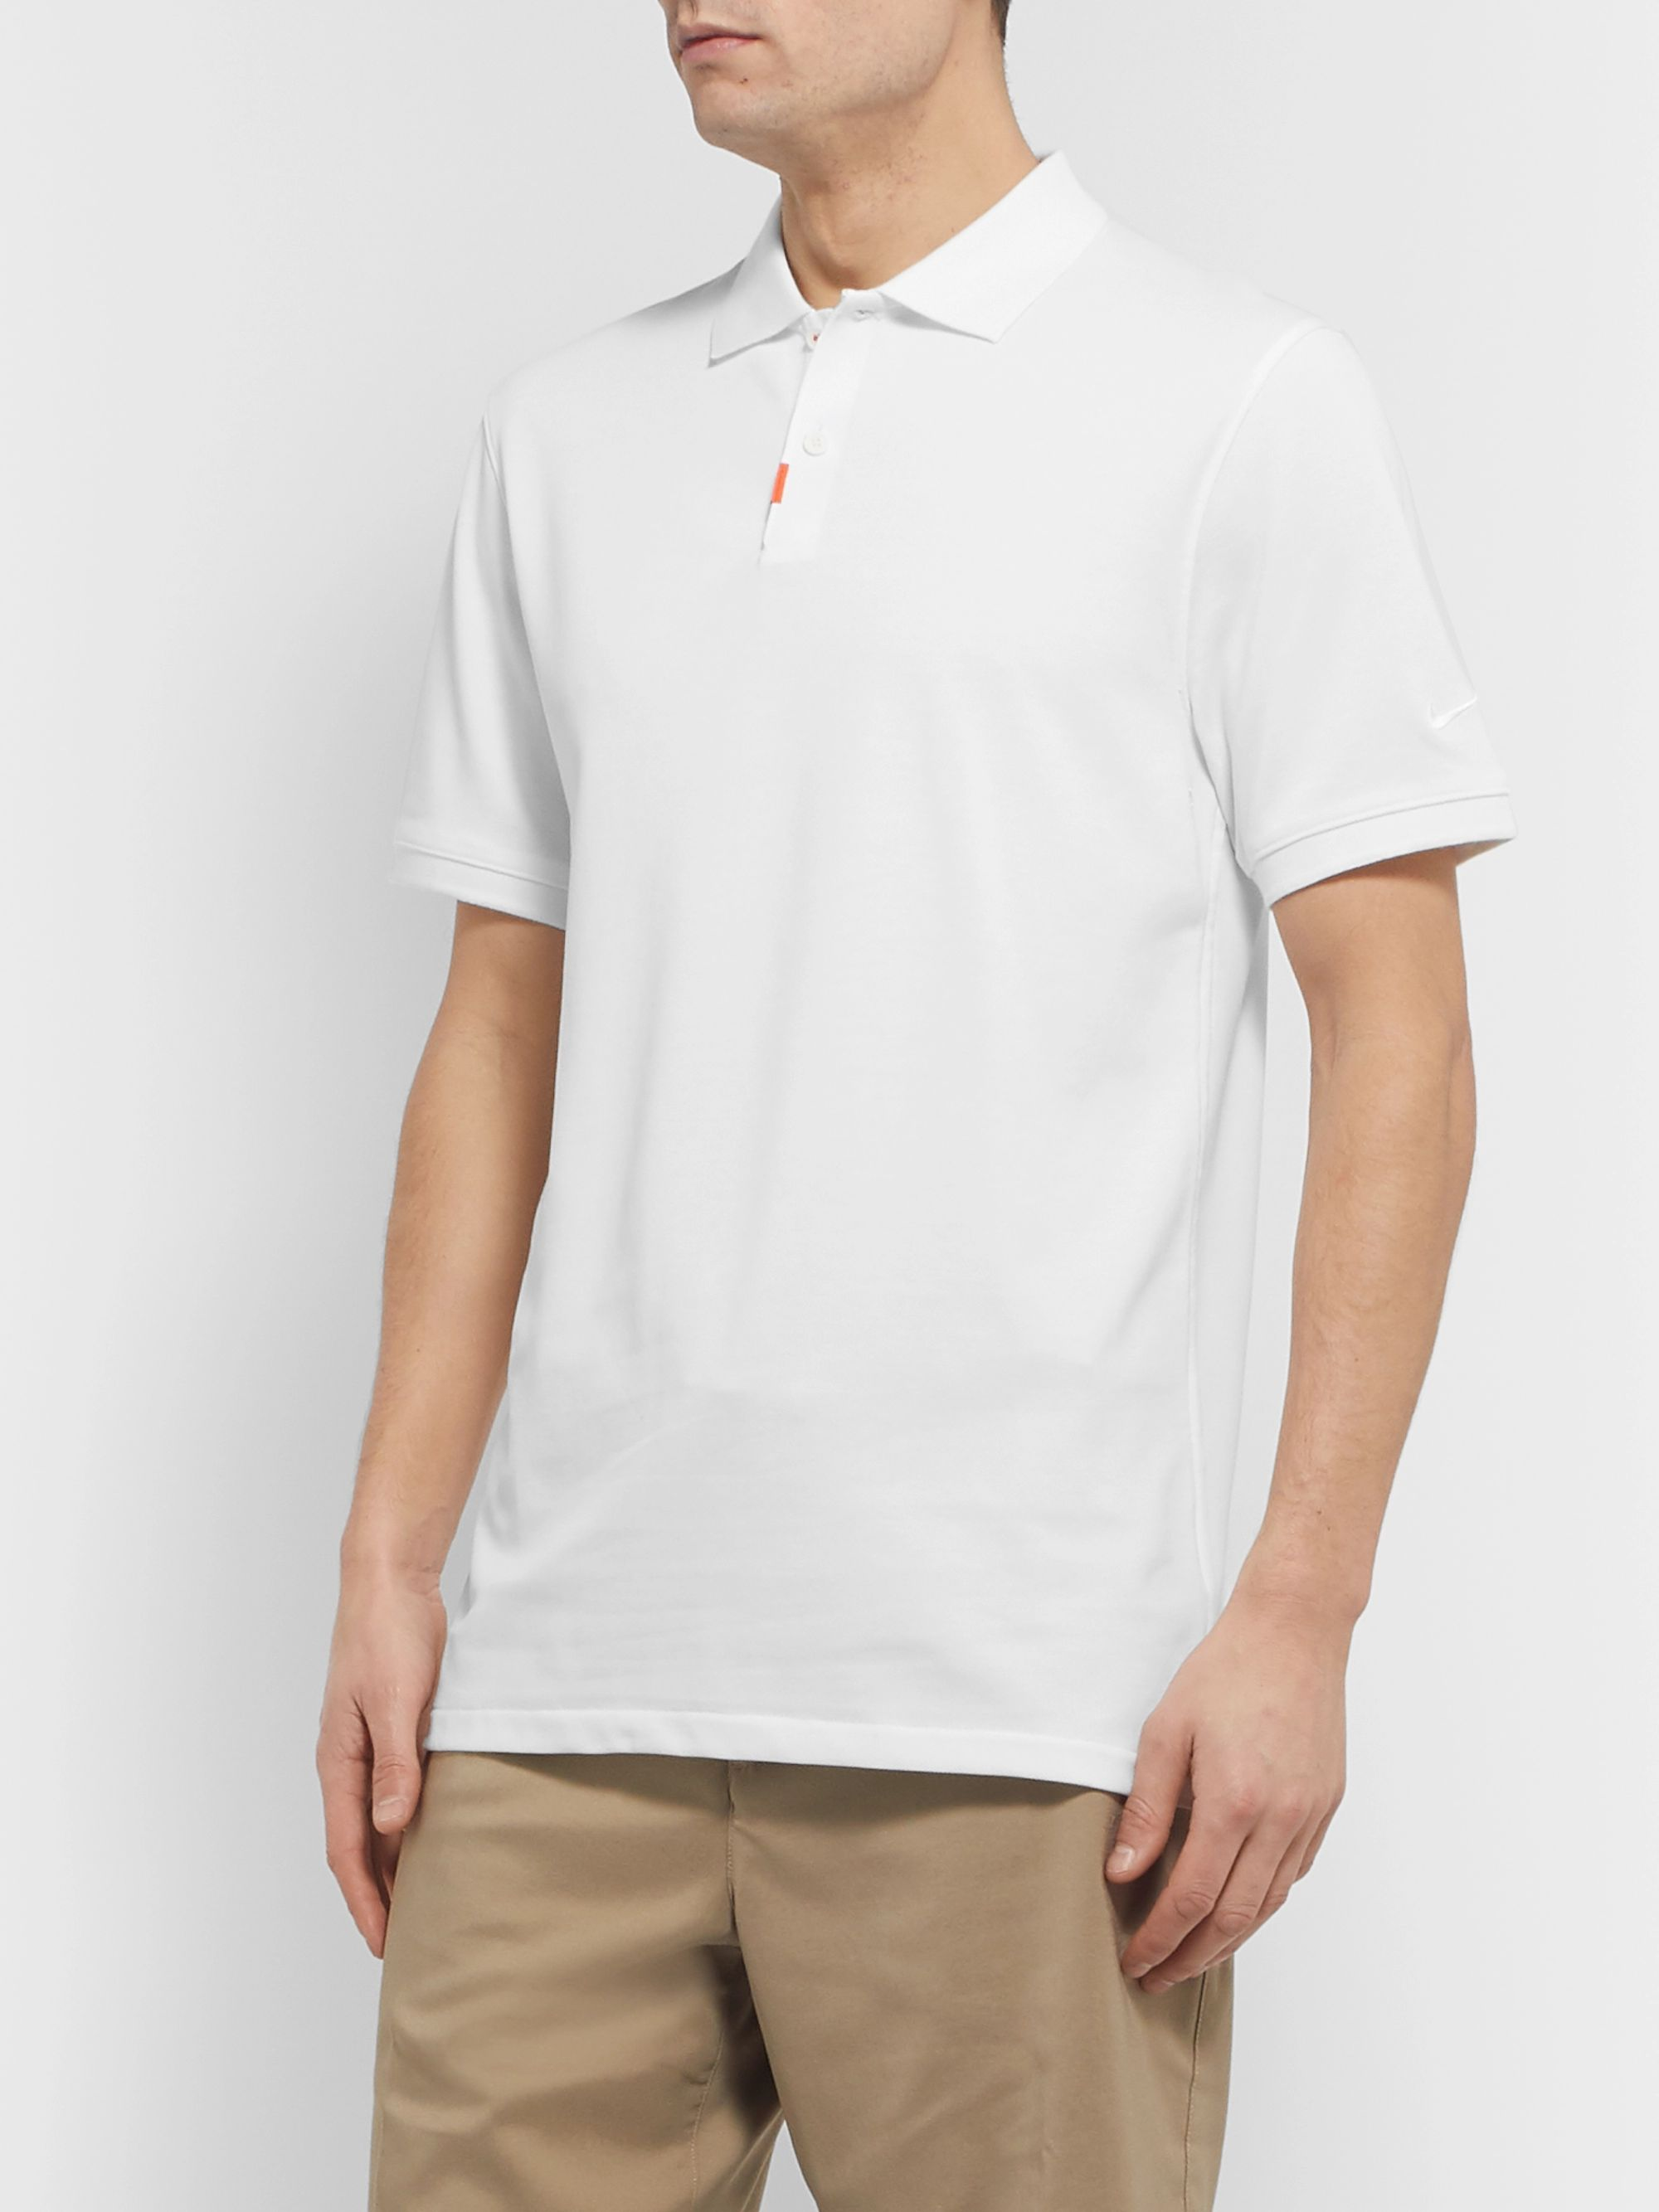 Nike Golf Dri-FIT Cotton-Blend Piqué Golf Polo Shirt